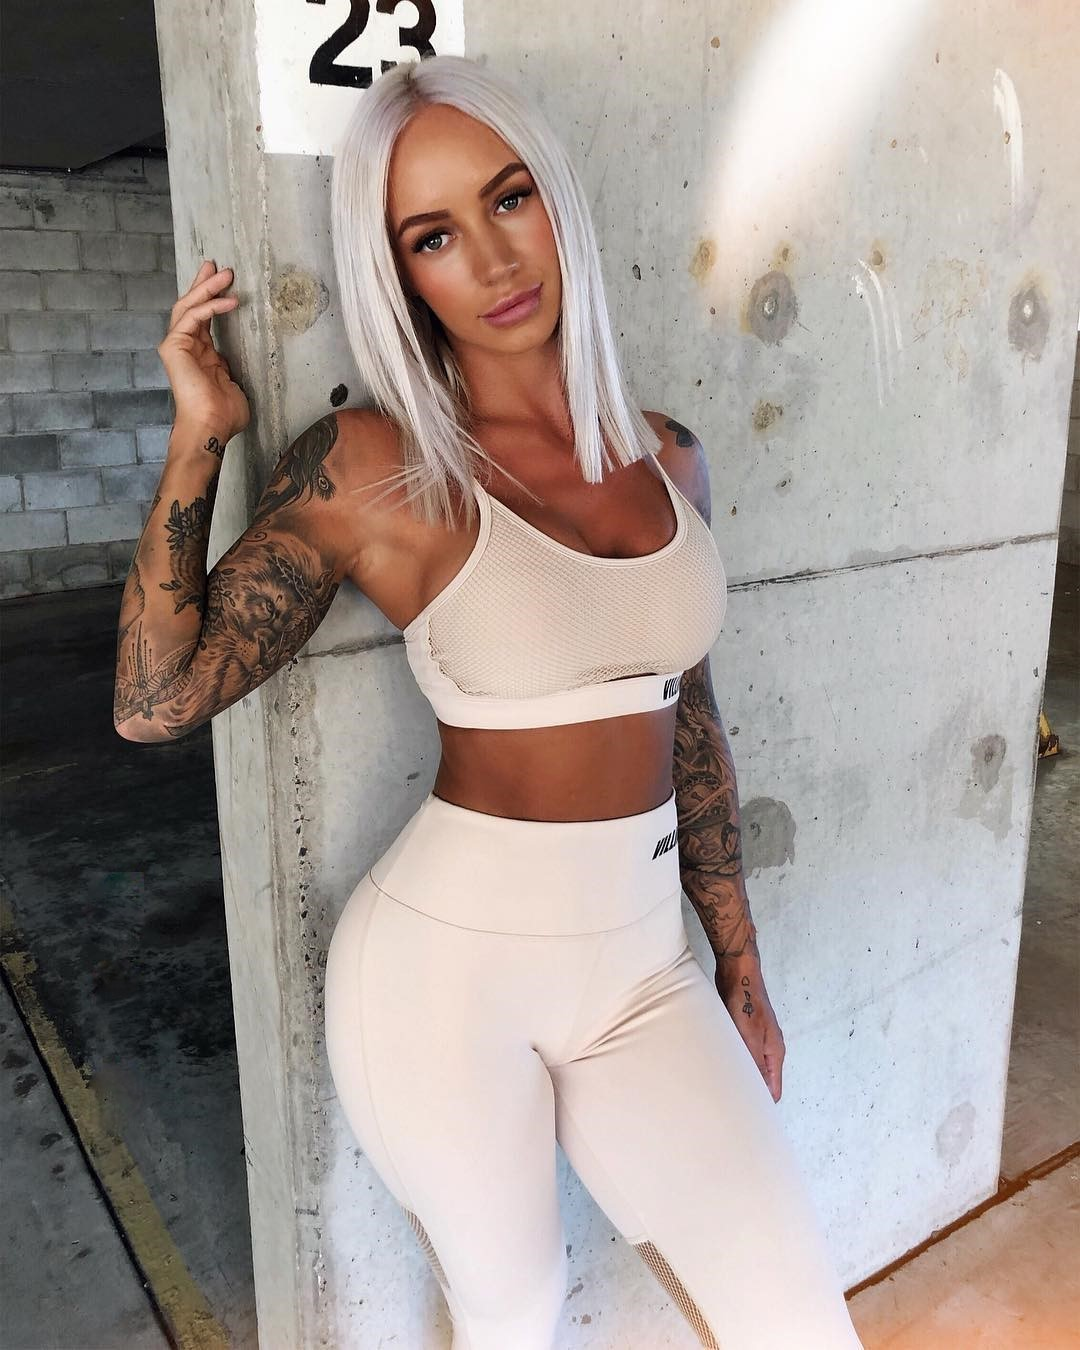 Court-Walding-Wallpapers-Insta-Fit-Bio-2